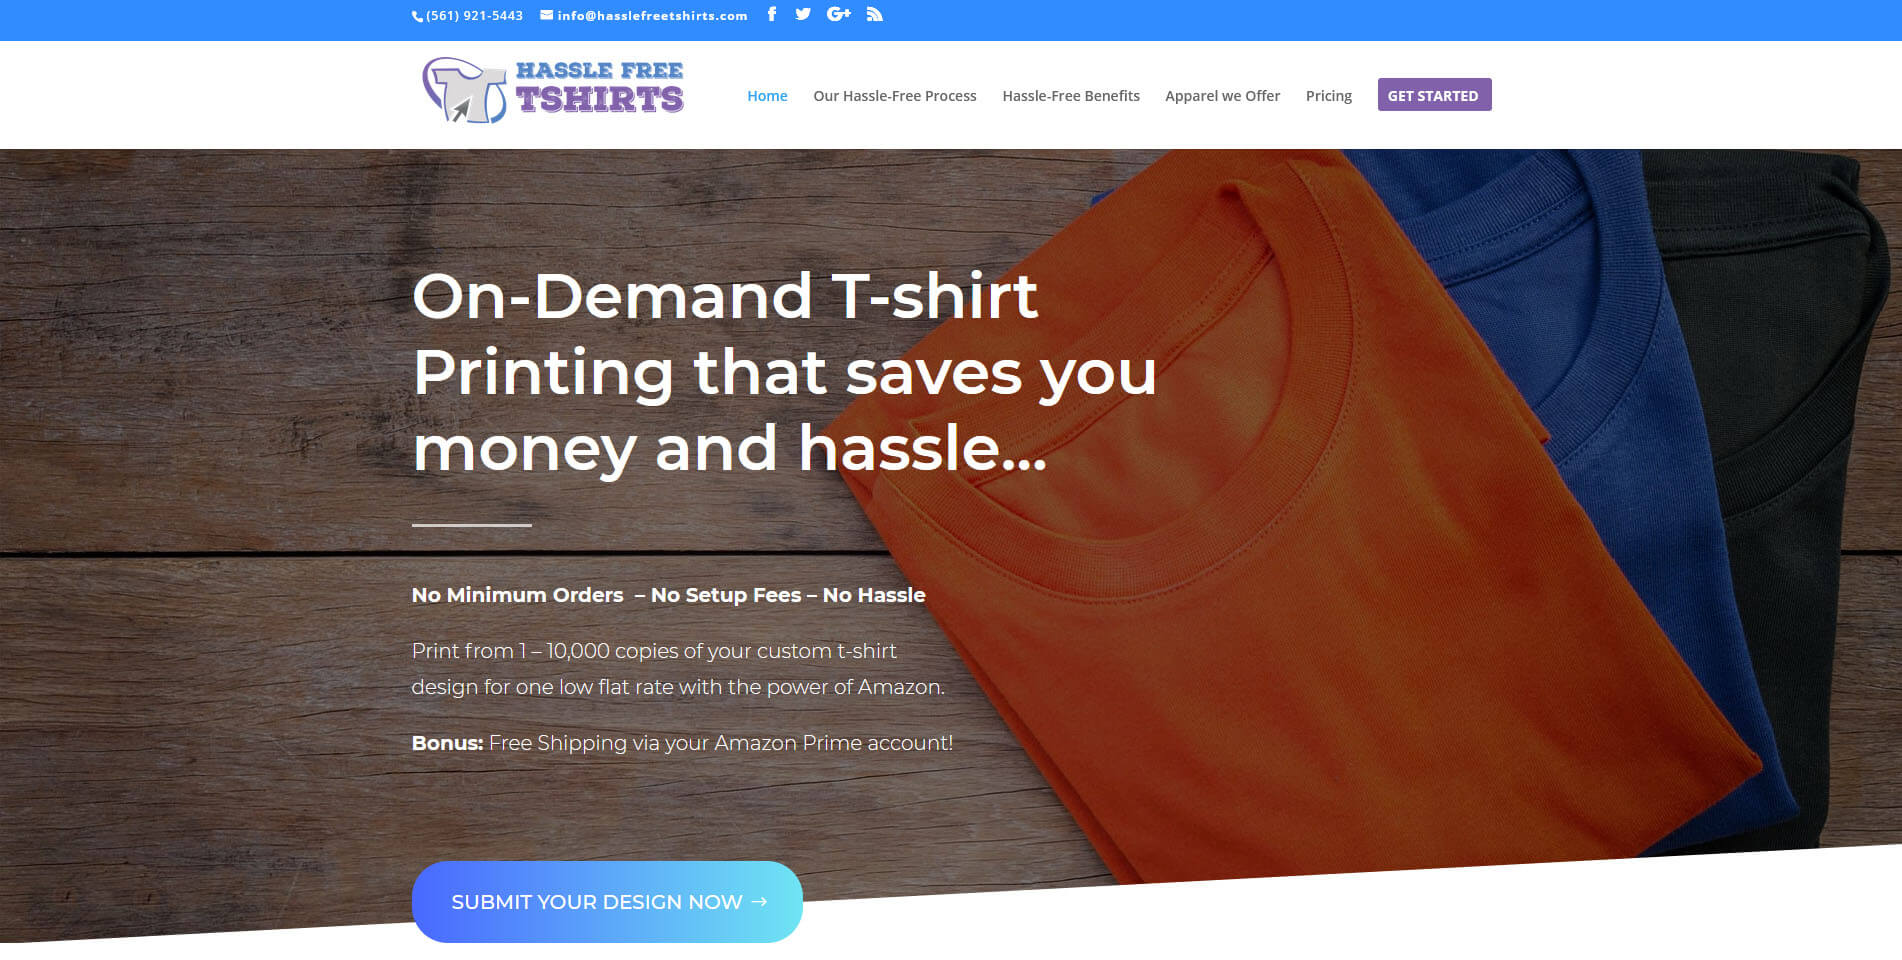 An image of the Hassle Free Tshirts website created by Not Fade Away Web Design.